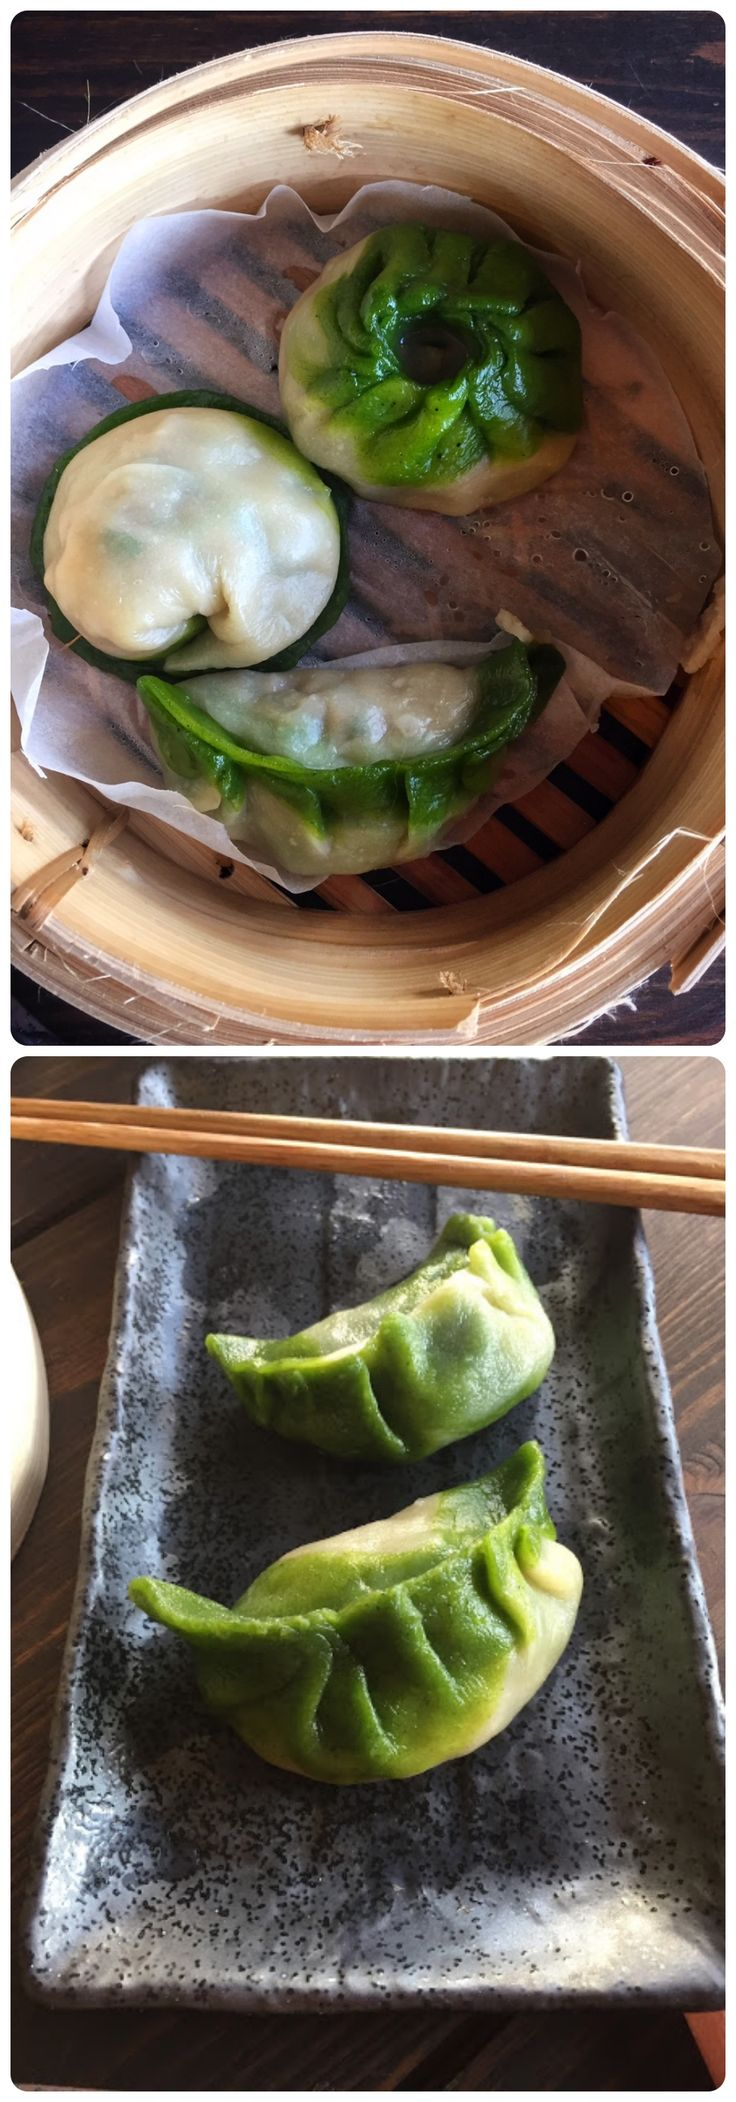 Green & White Dumplings - Chard Dumplings